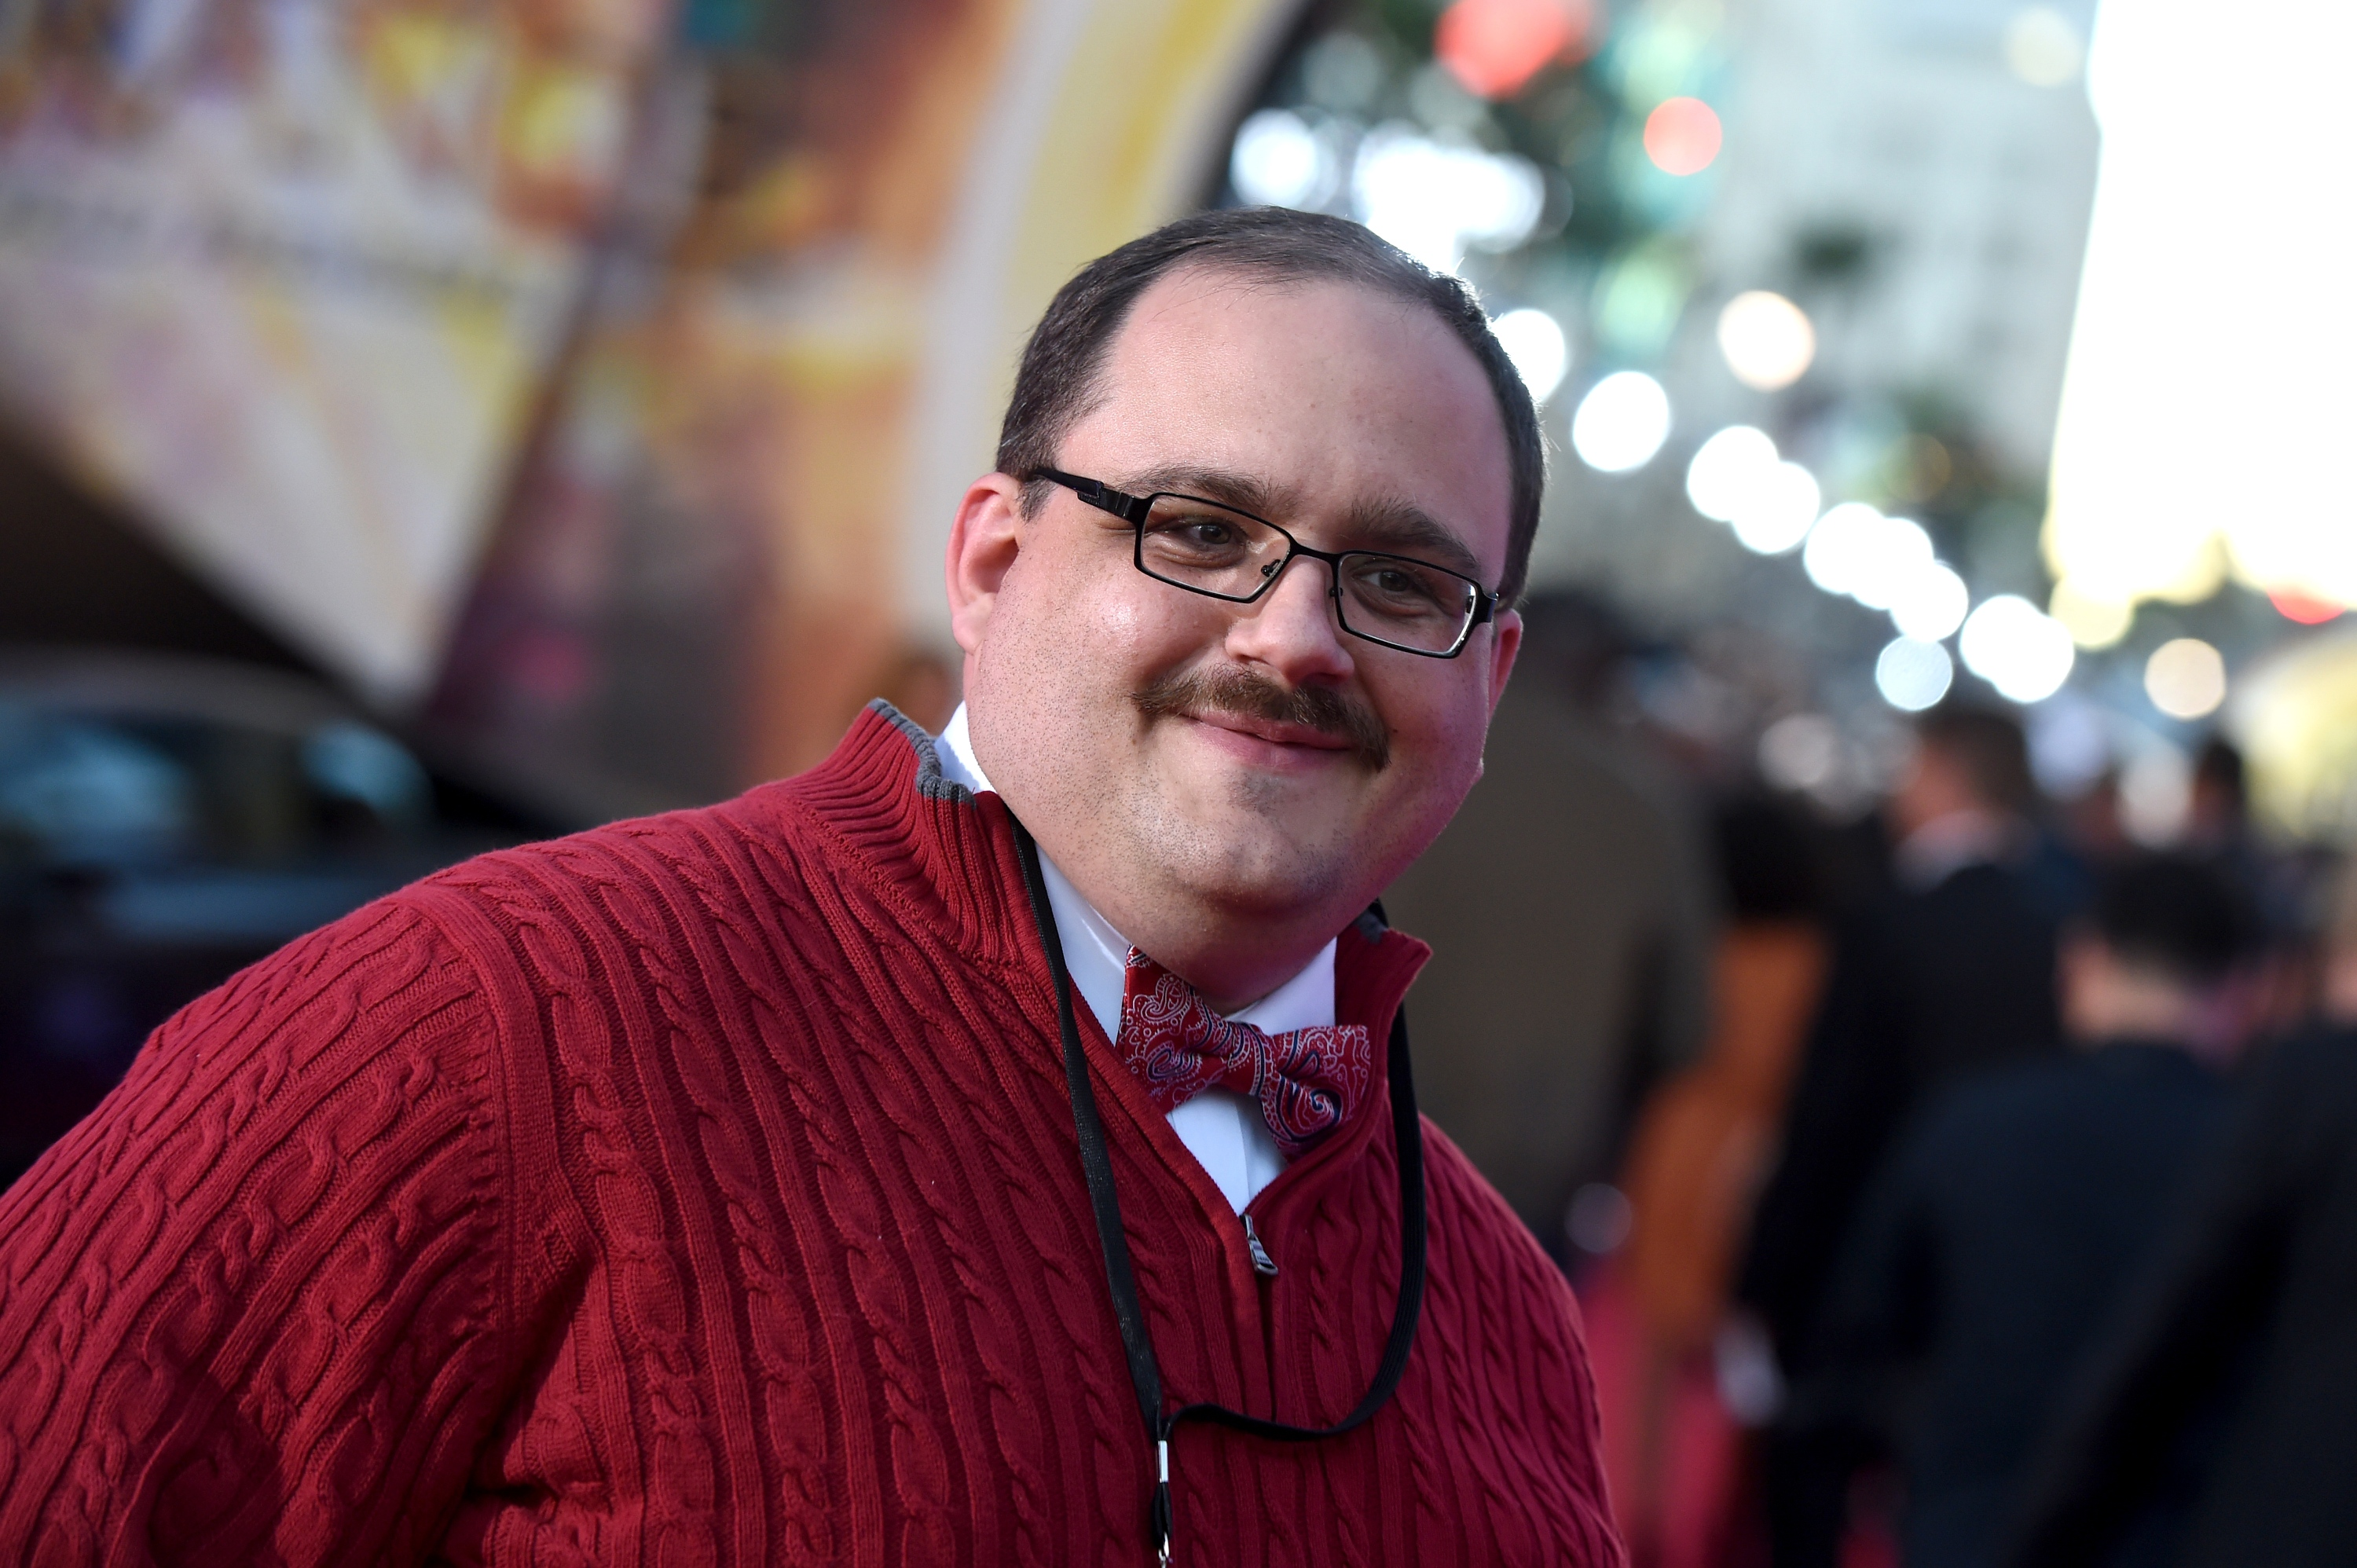 Ken Bone still won't say who he voted for